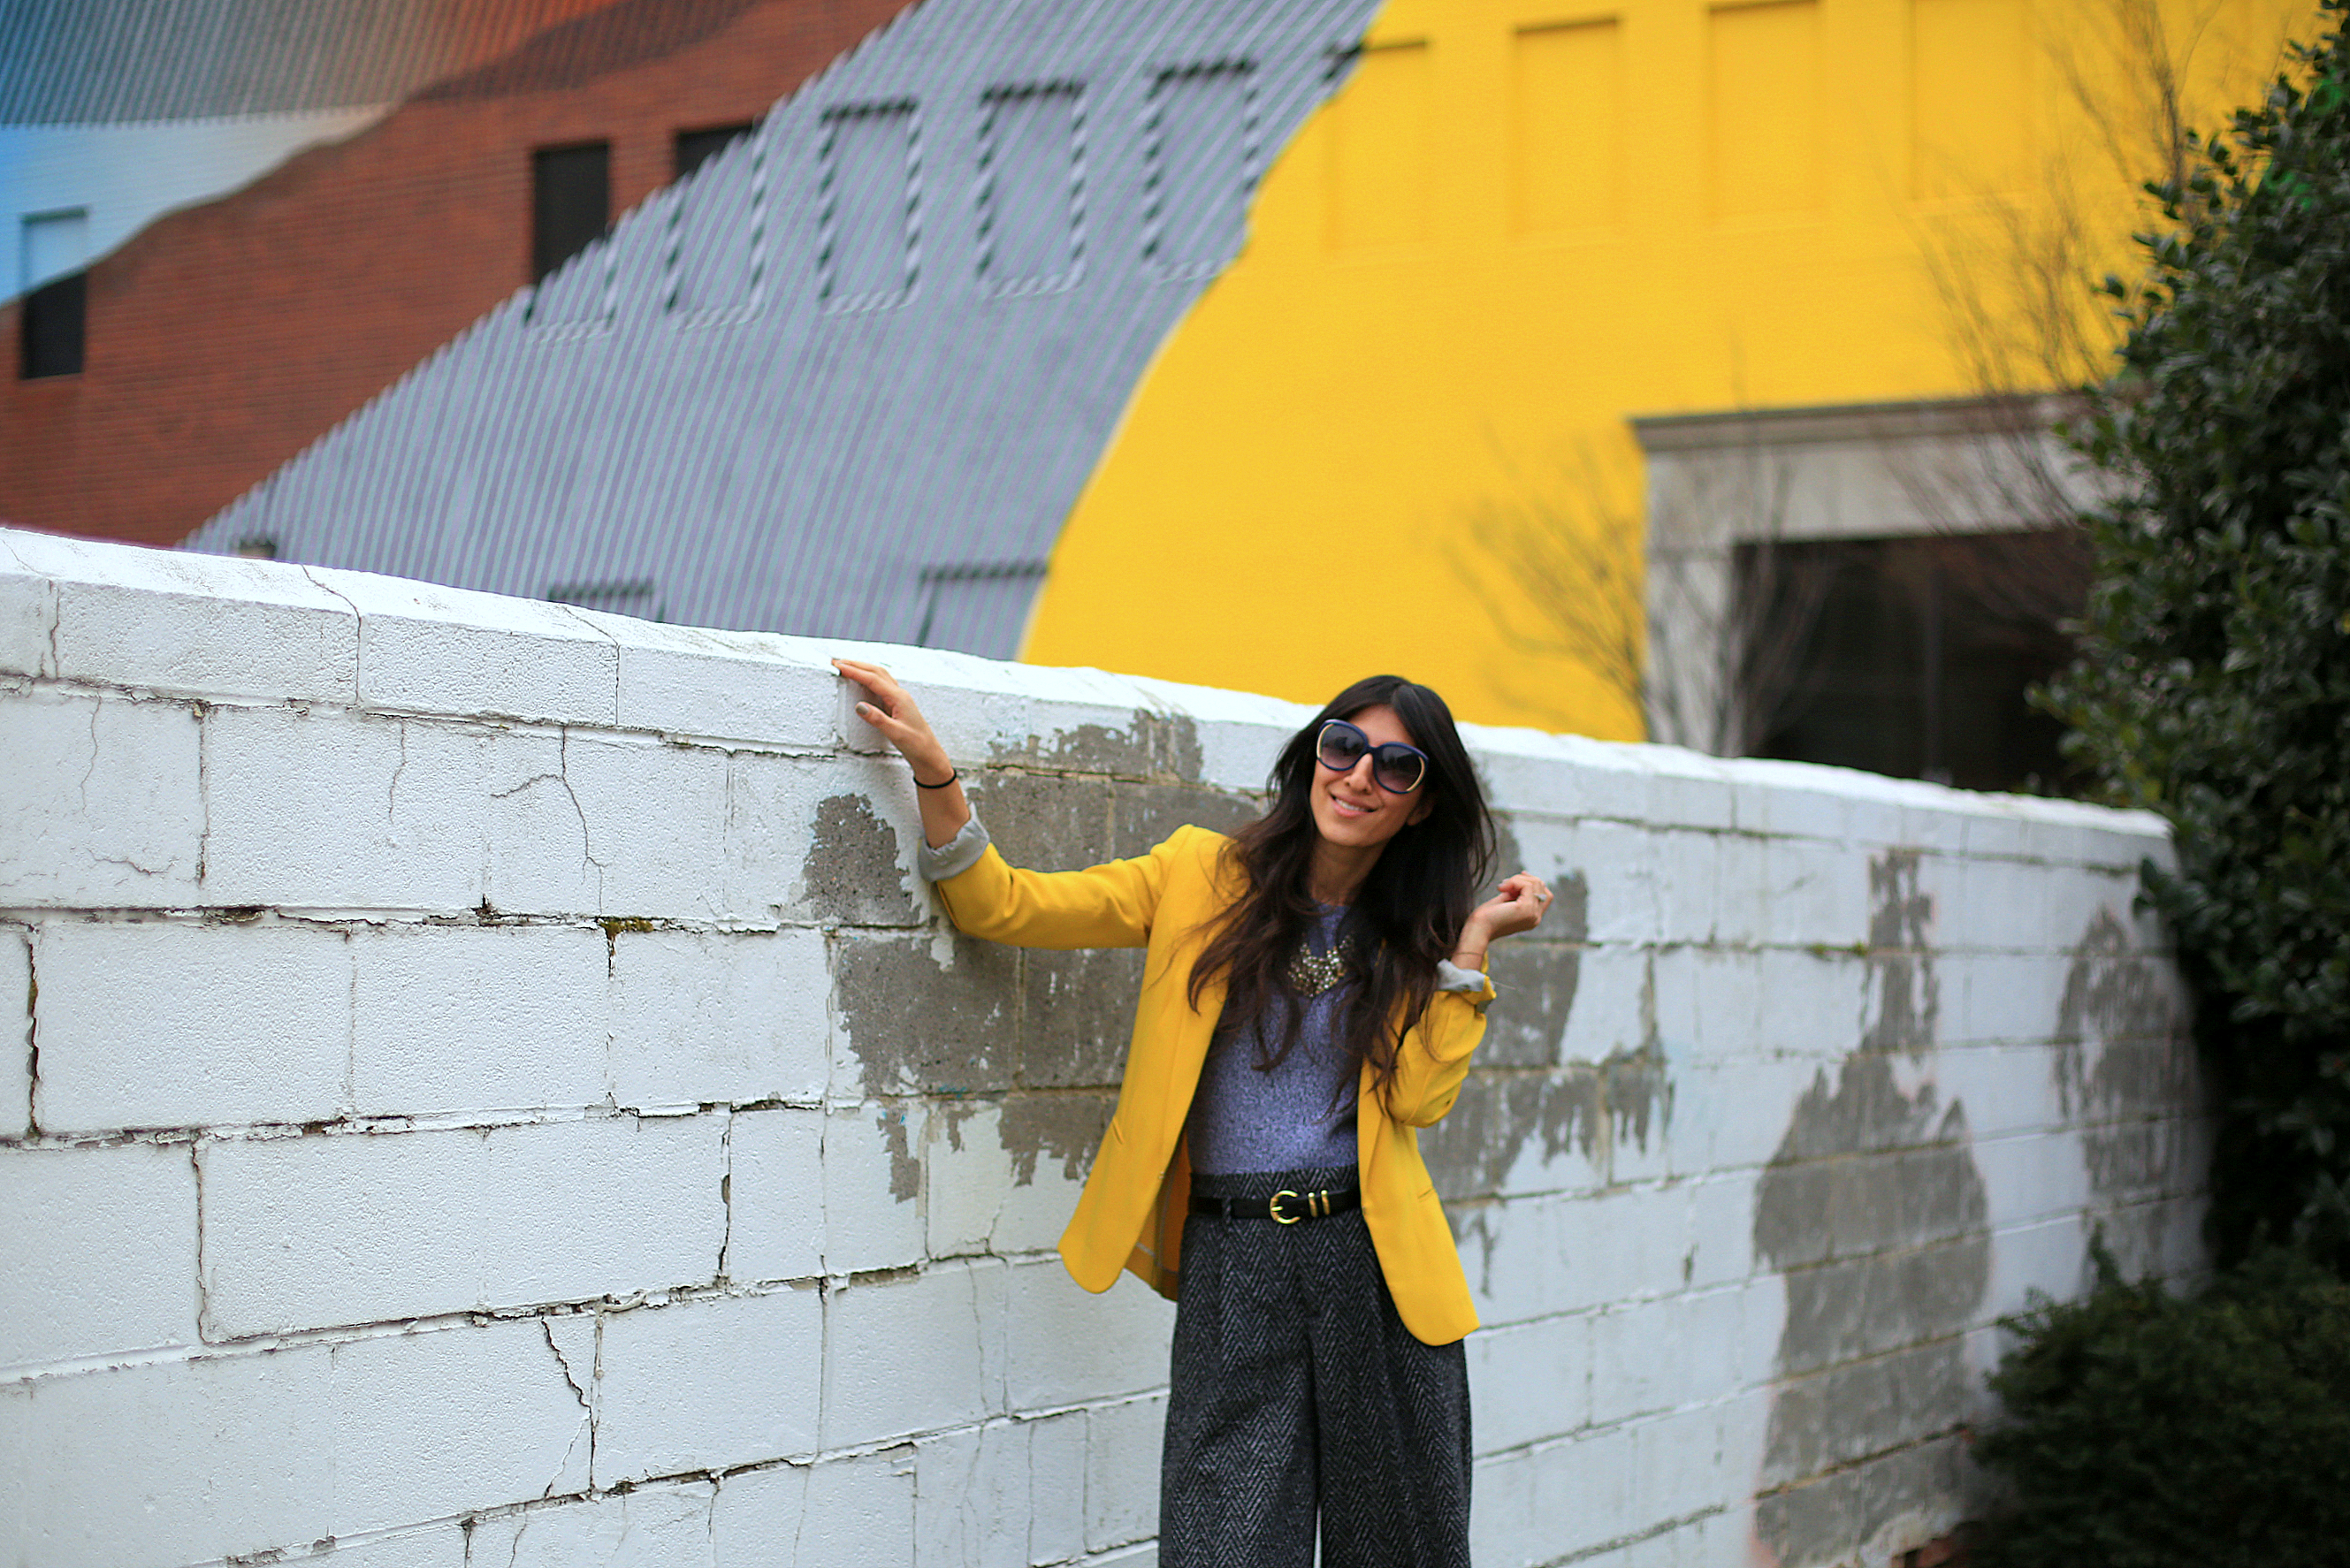 Oh hello lemon yellow! Who says you can't have fun with color unless it's summer? Brighten up your winter neutrals with a bold blazer!